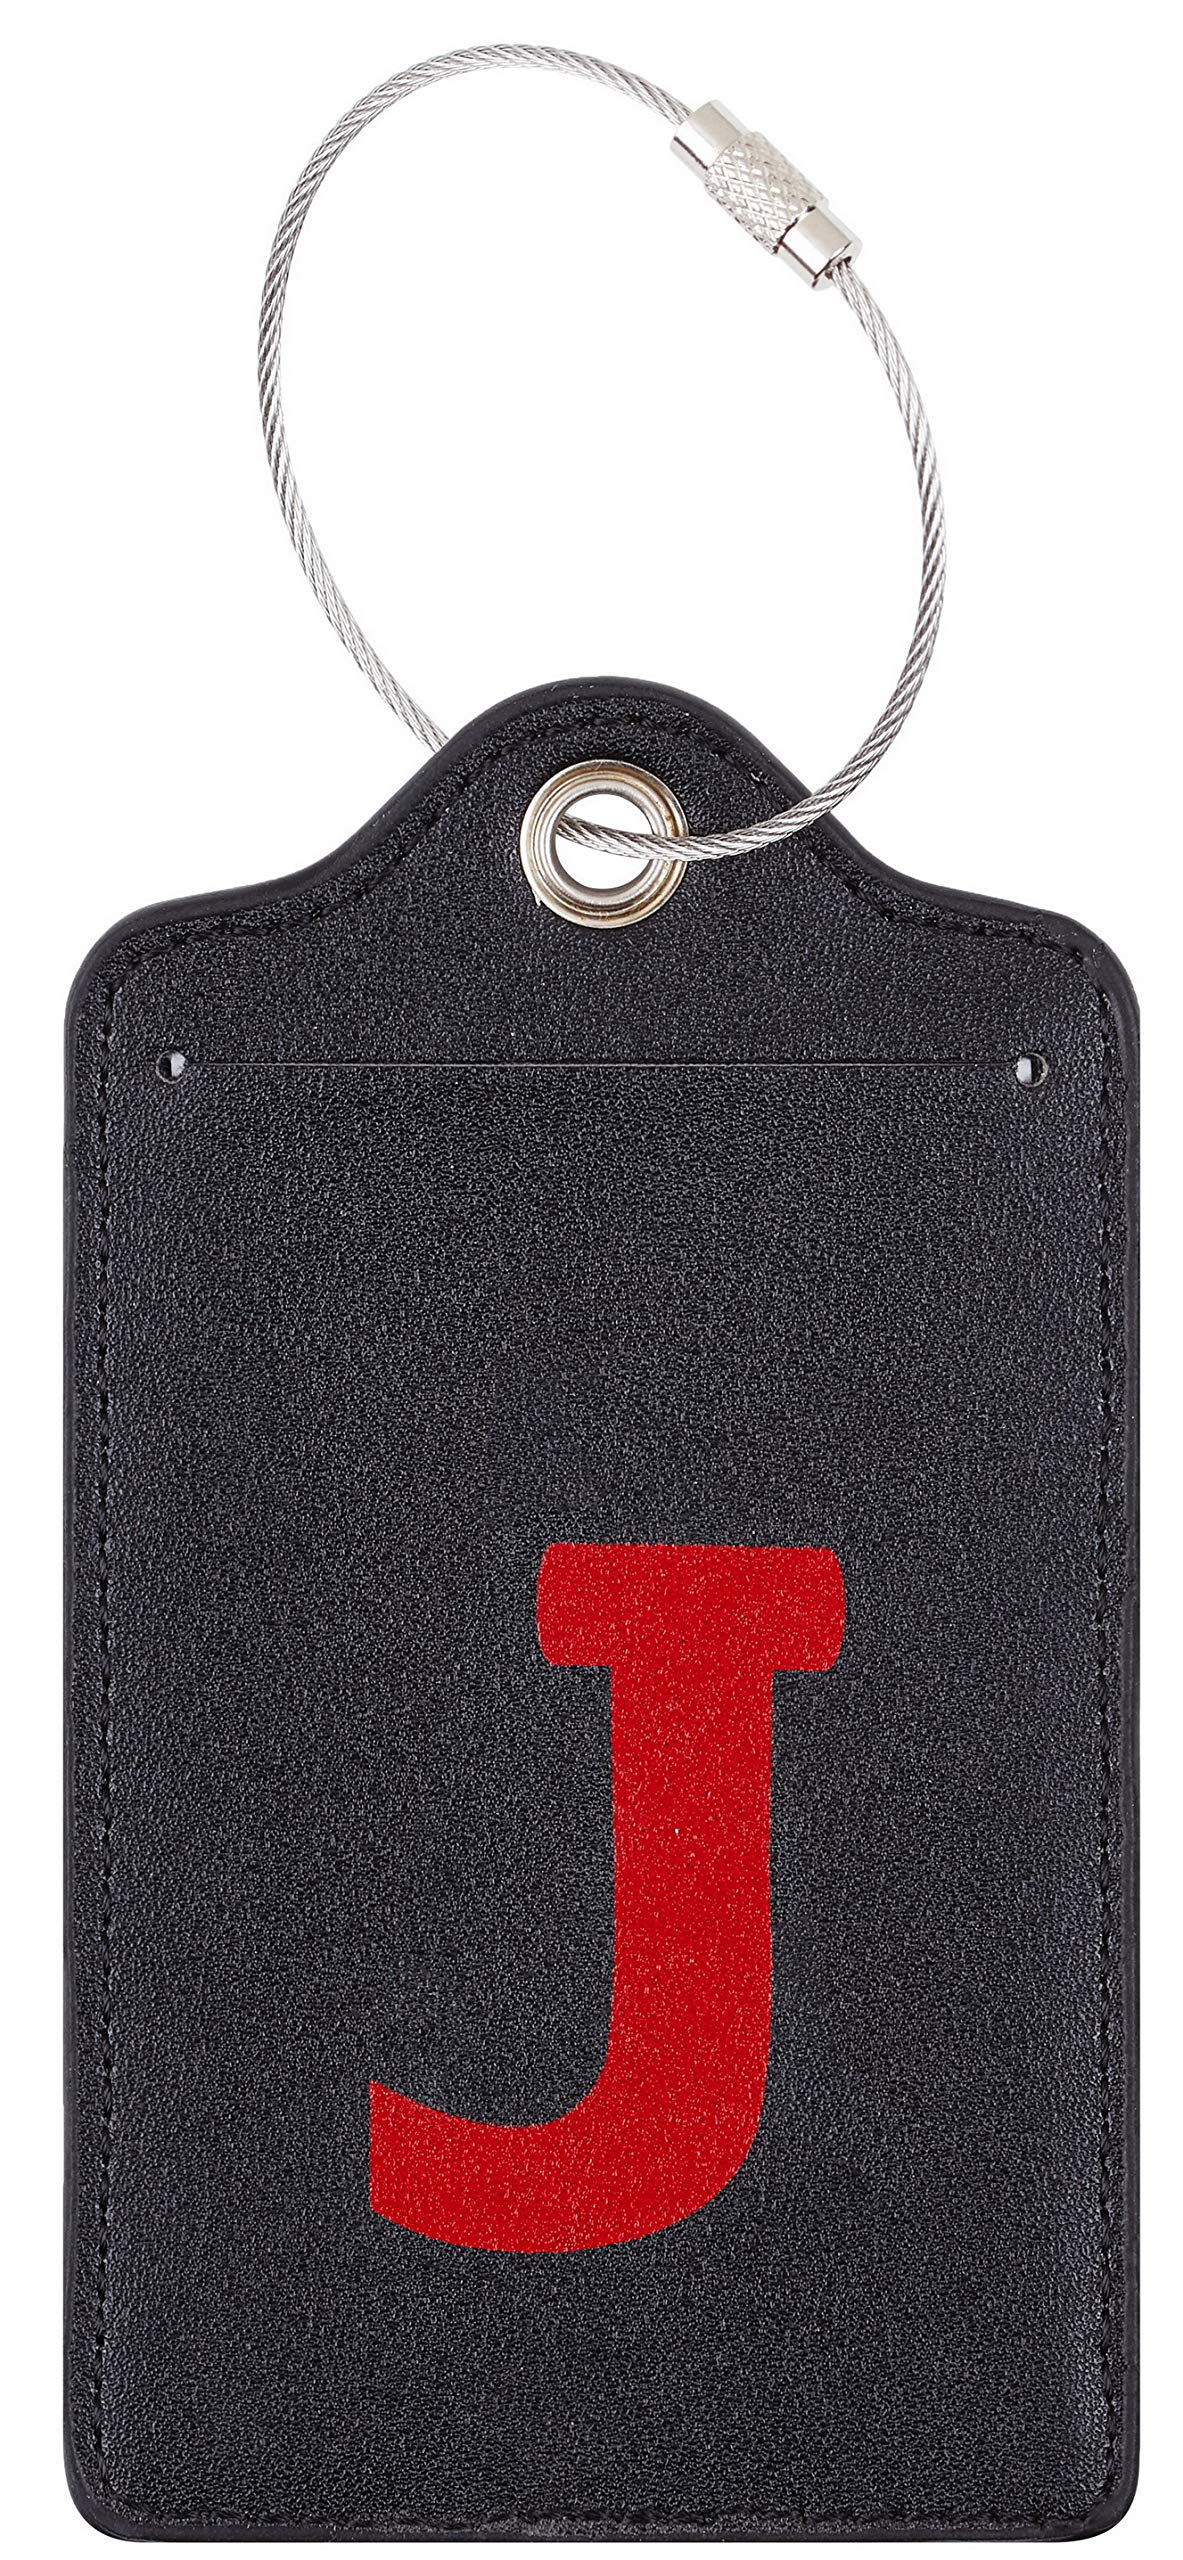 Chelmon Initial Luggage Tag with Full Privacy Cover and Stainless Steel Loop (J)